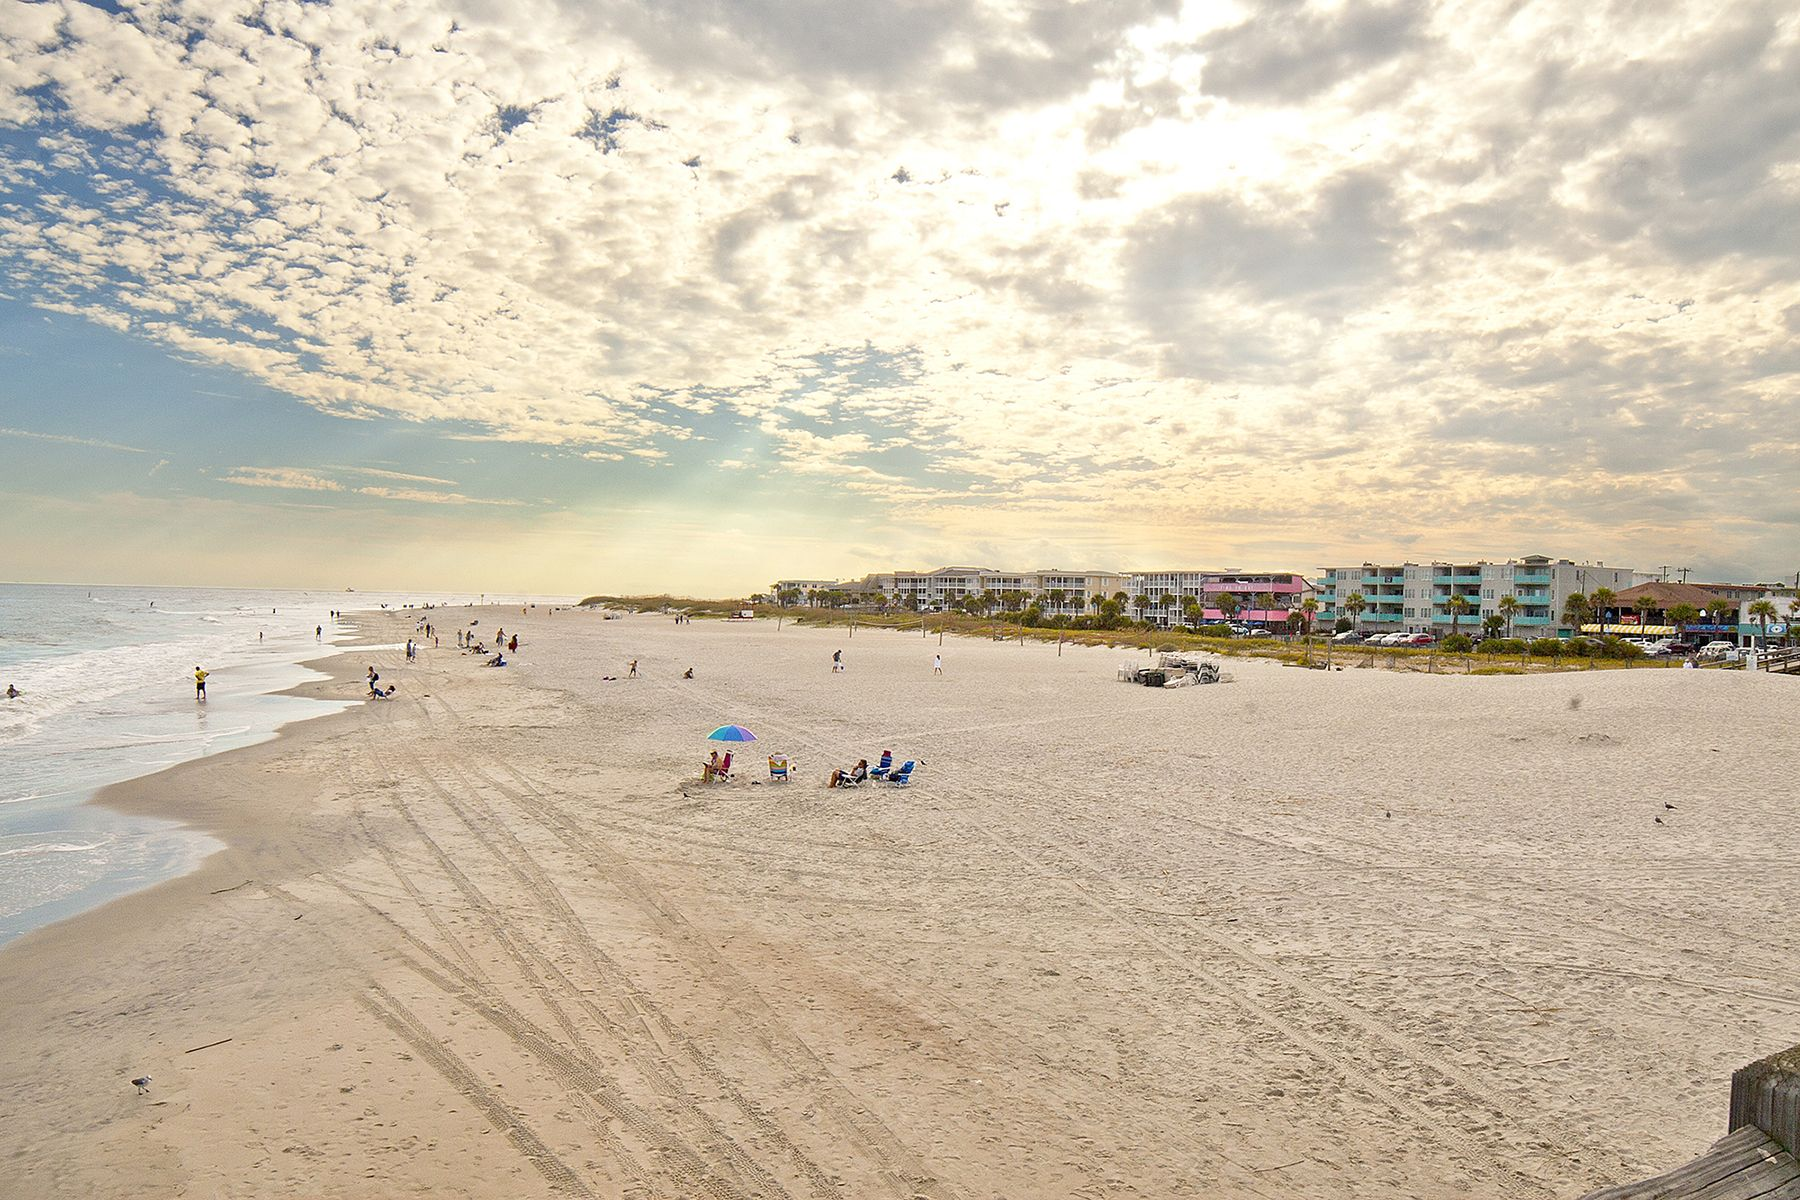 Tybee Island Also Known As Savannah Beach Is An Easily Accessible Barrier Located Just 18 Miles Away From